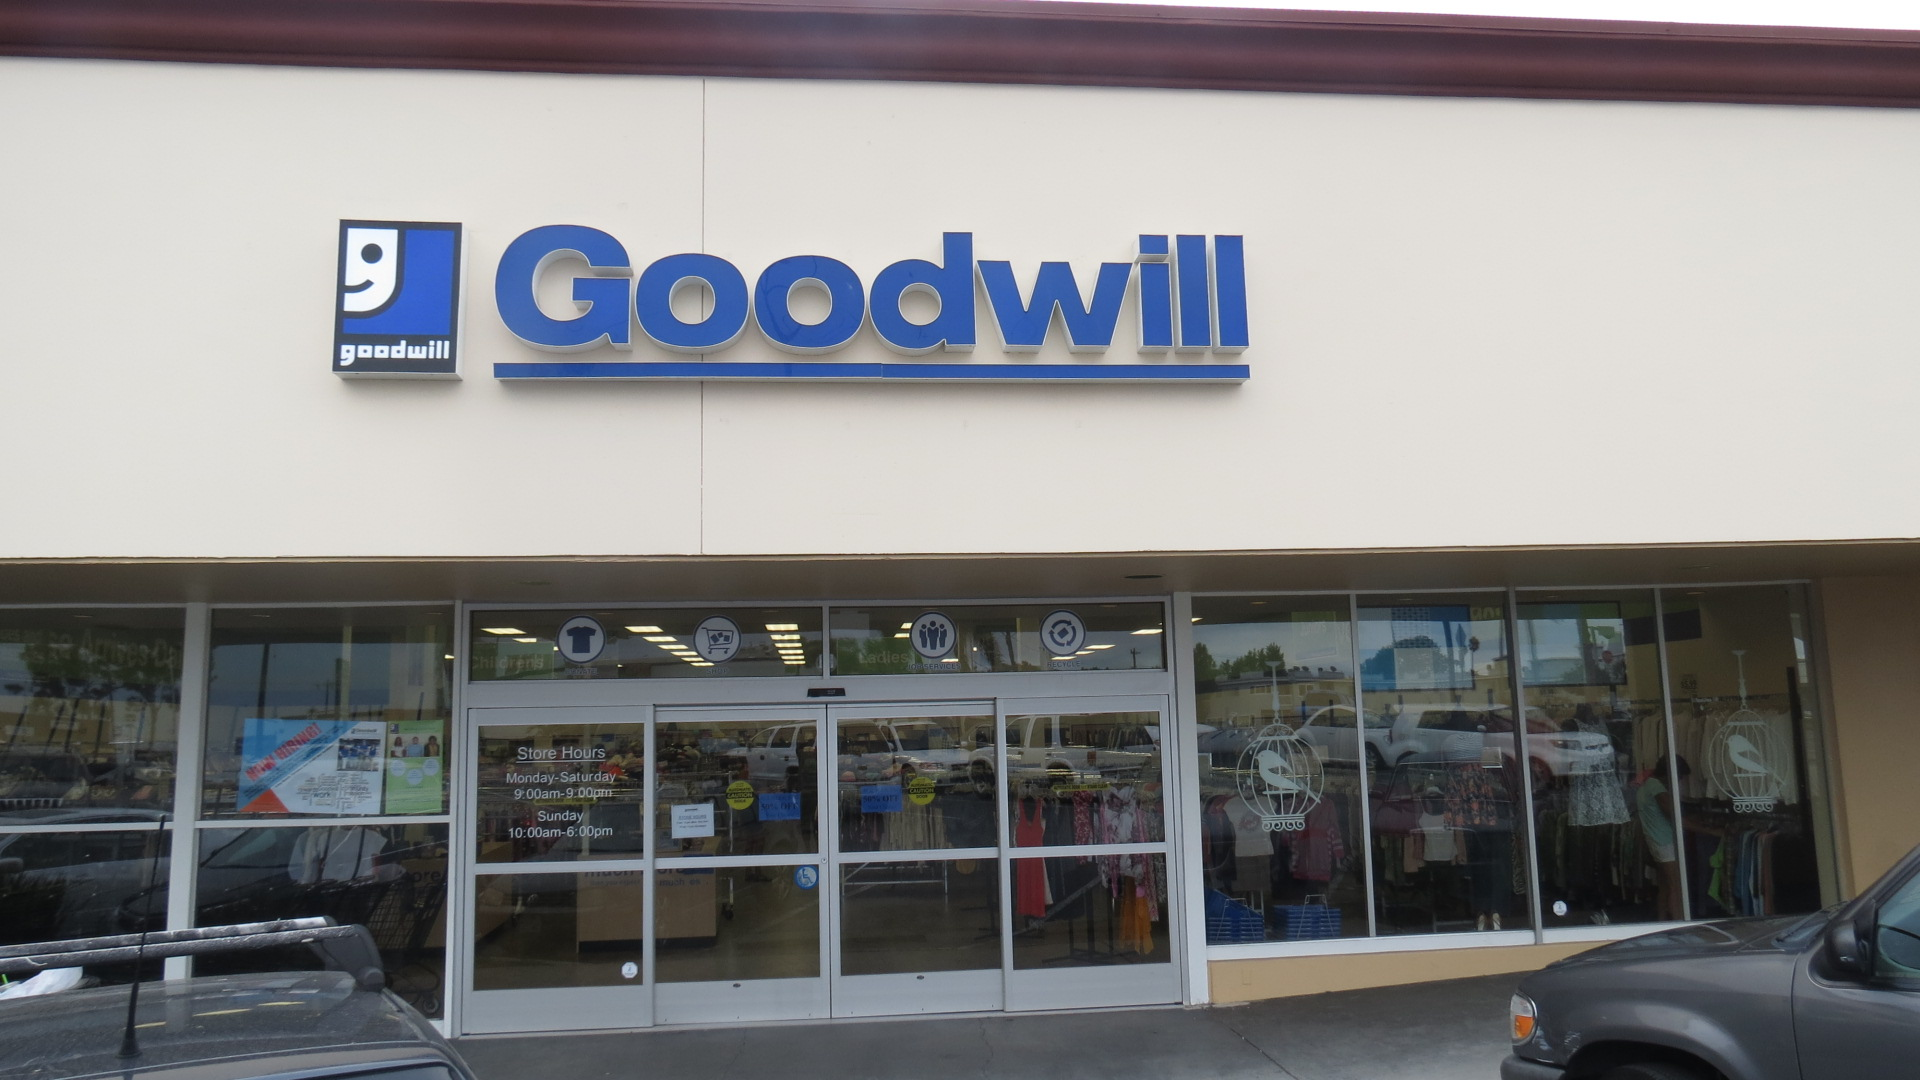 Manhattan Beach Goodwill Retail Store & Donation Center